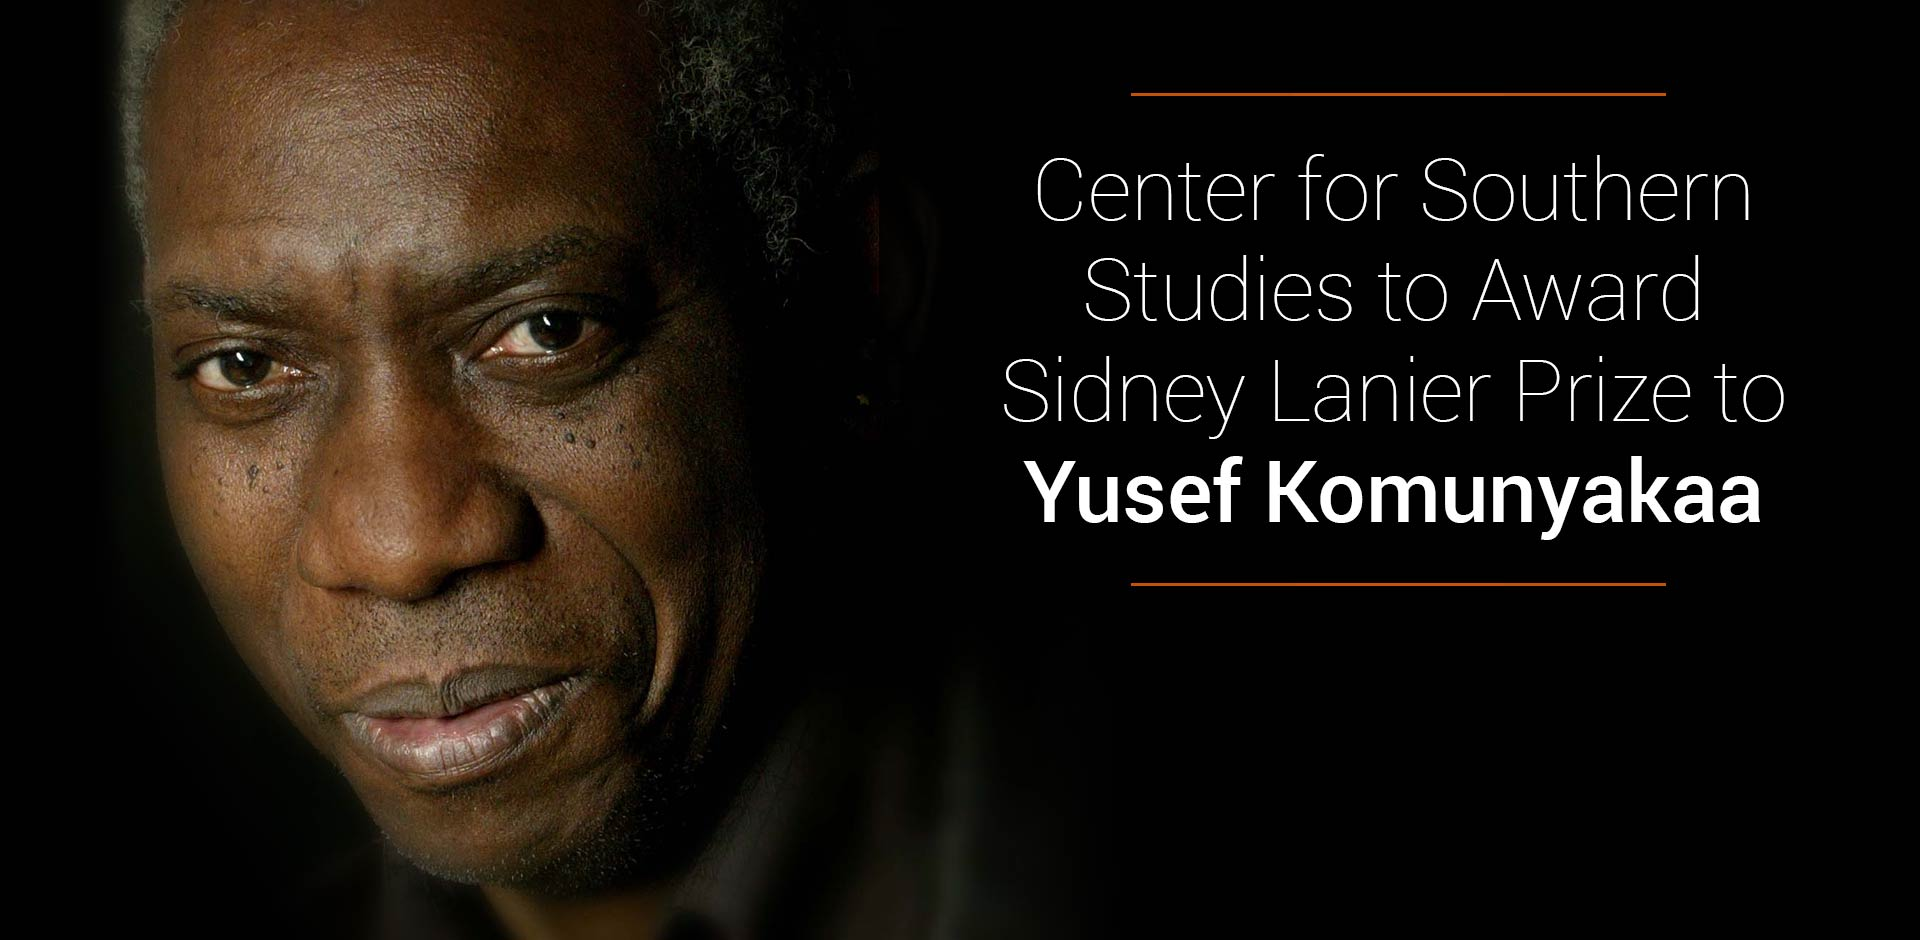 Center for Southern Studies to Award Sidney Lanier Prize to Komunyakaa on April 25